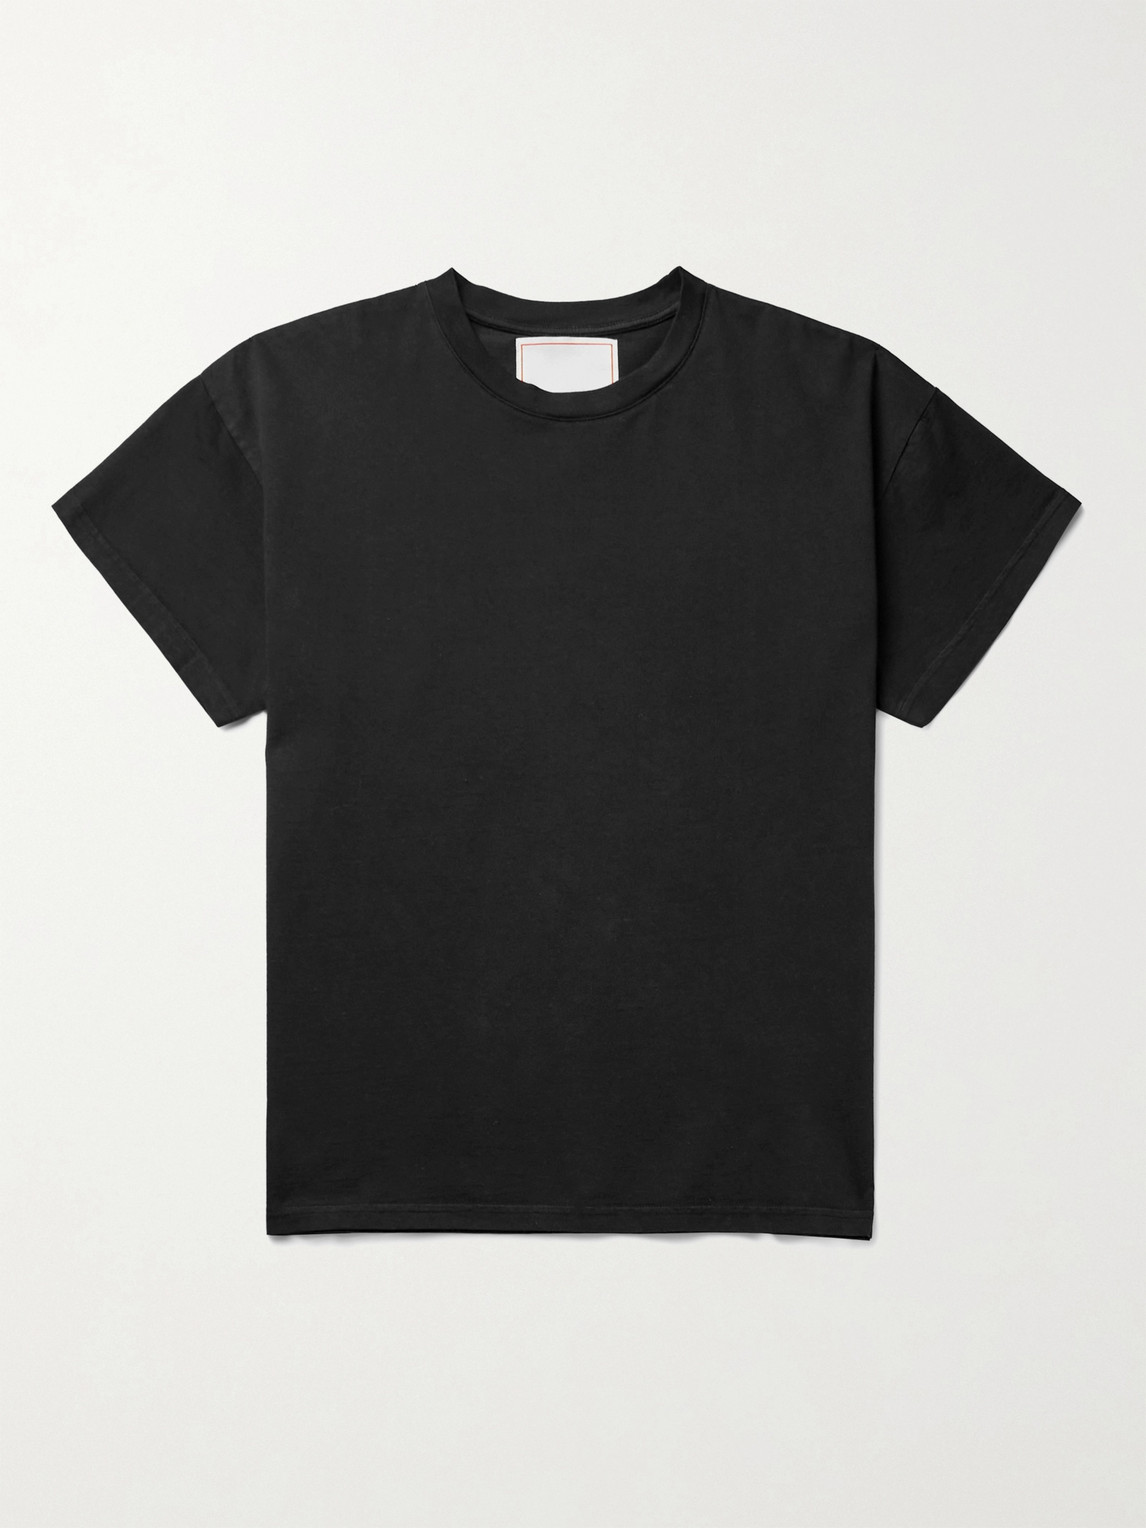 Jeanerica Marcel 180 Organic Cotton-jersey T-shirt In Black